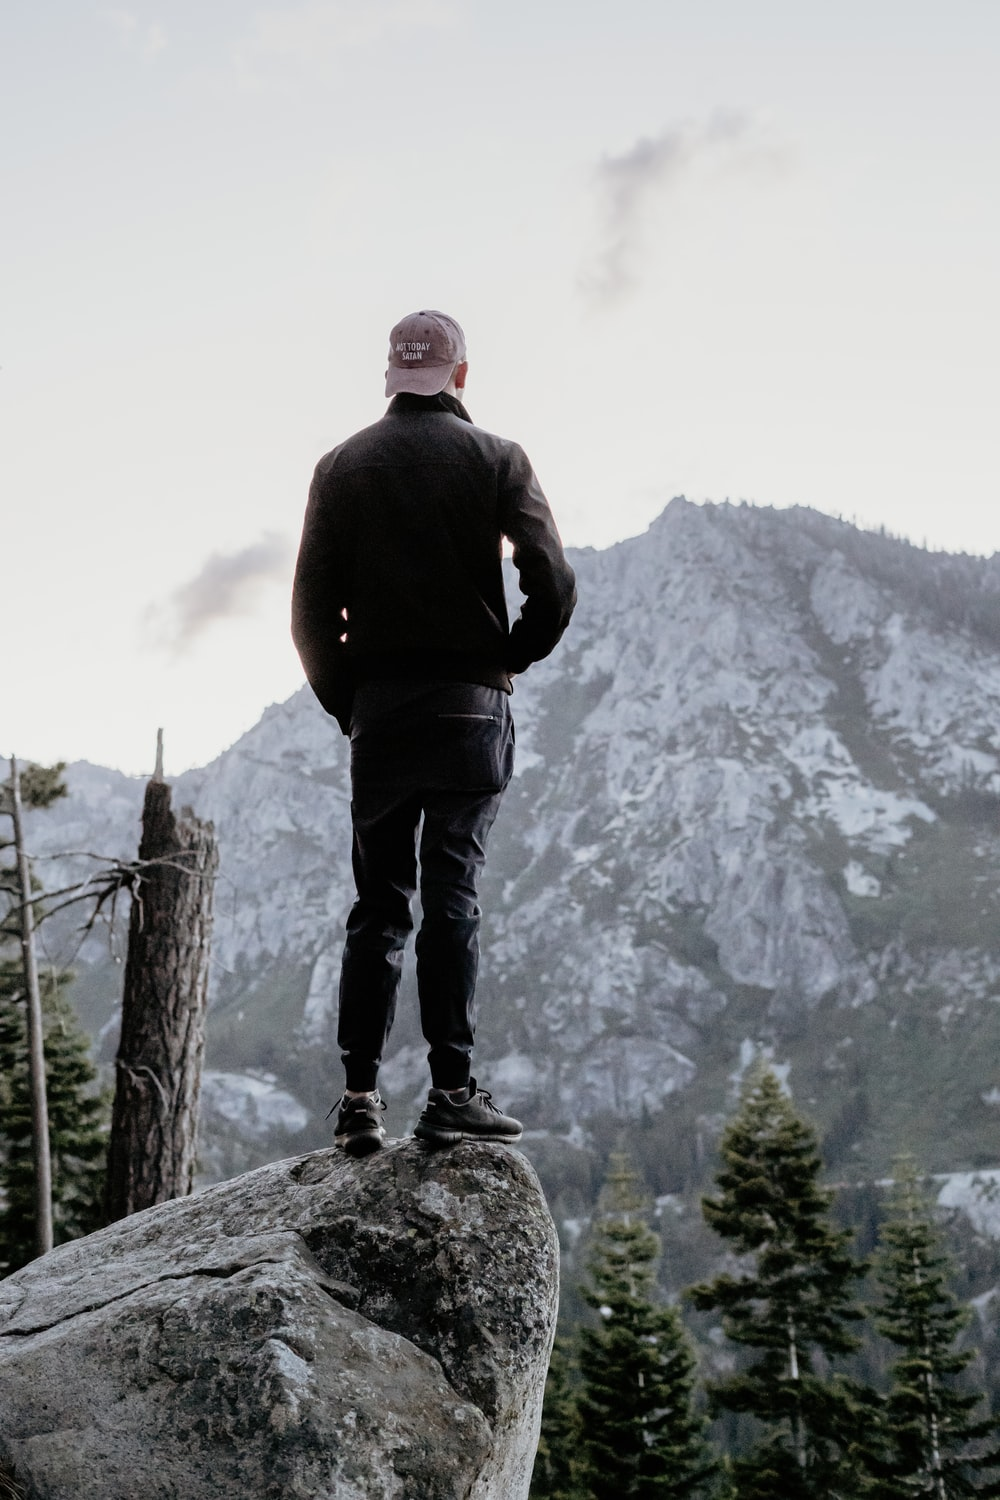 man standing on gray rock looking at mountain peak